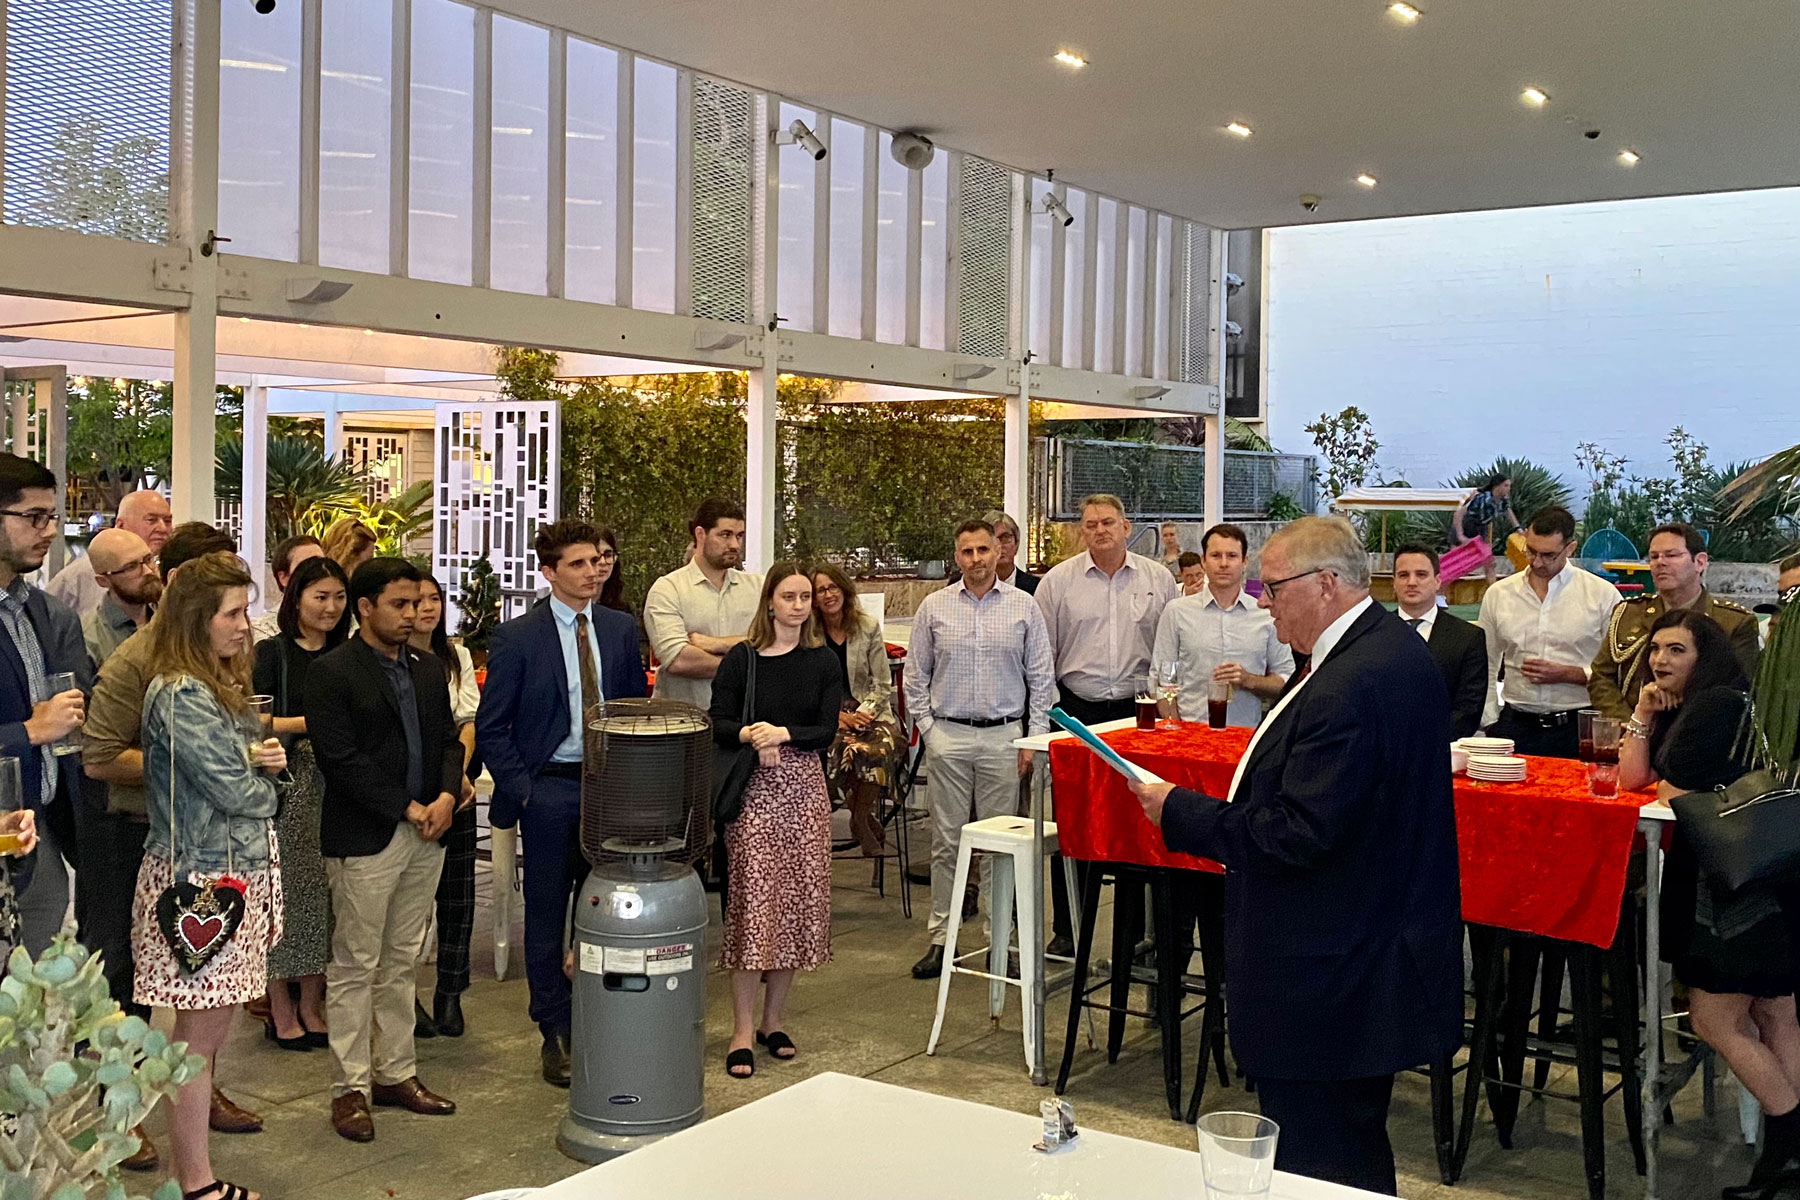 Perth-Think-&-Drink-with-the-Honourable-Kim-Beazley